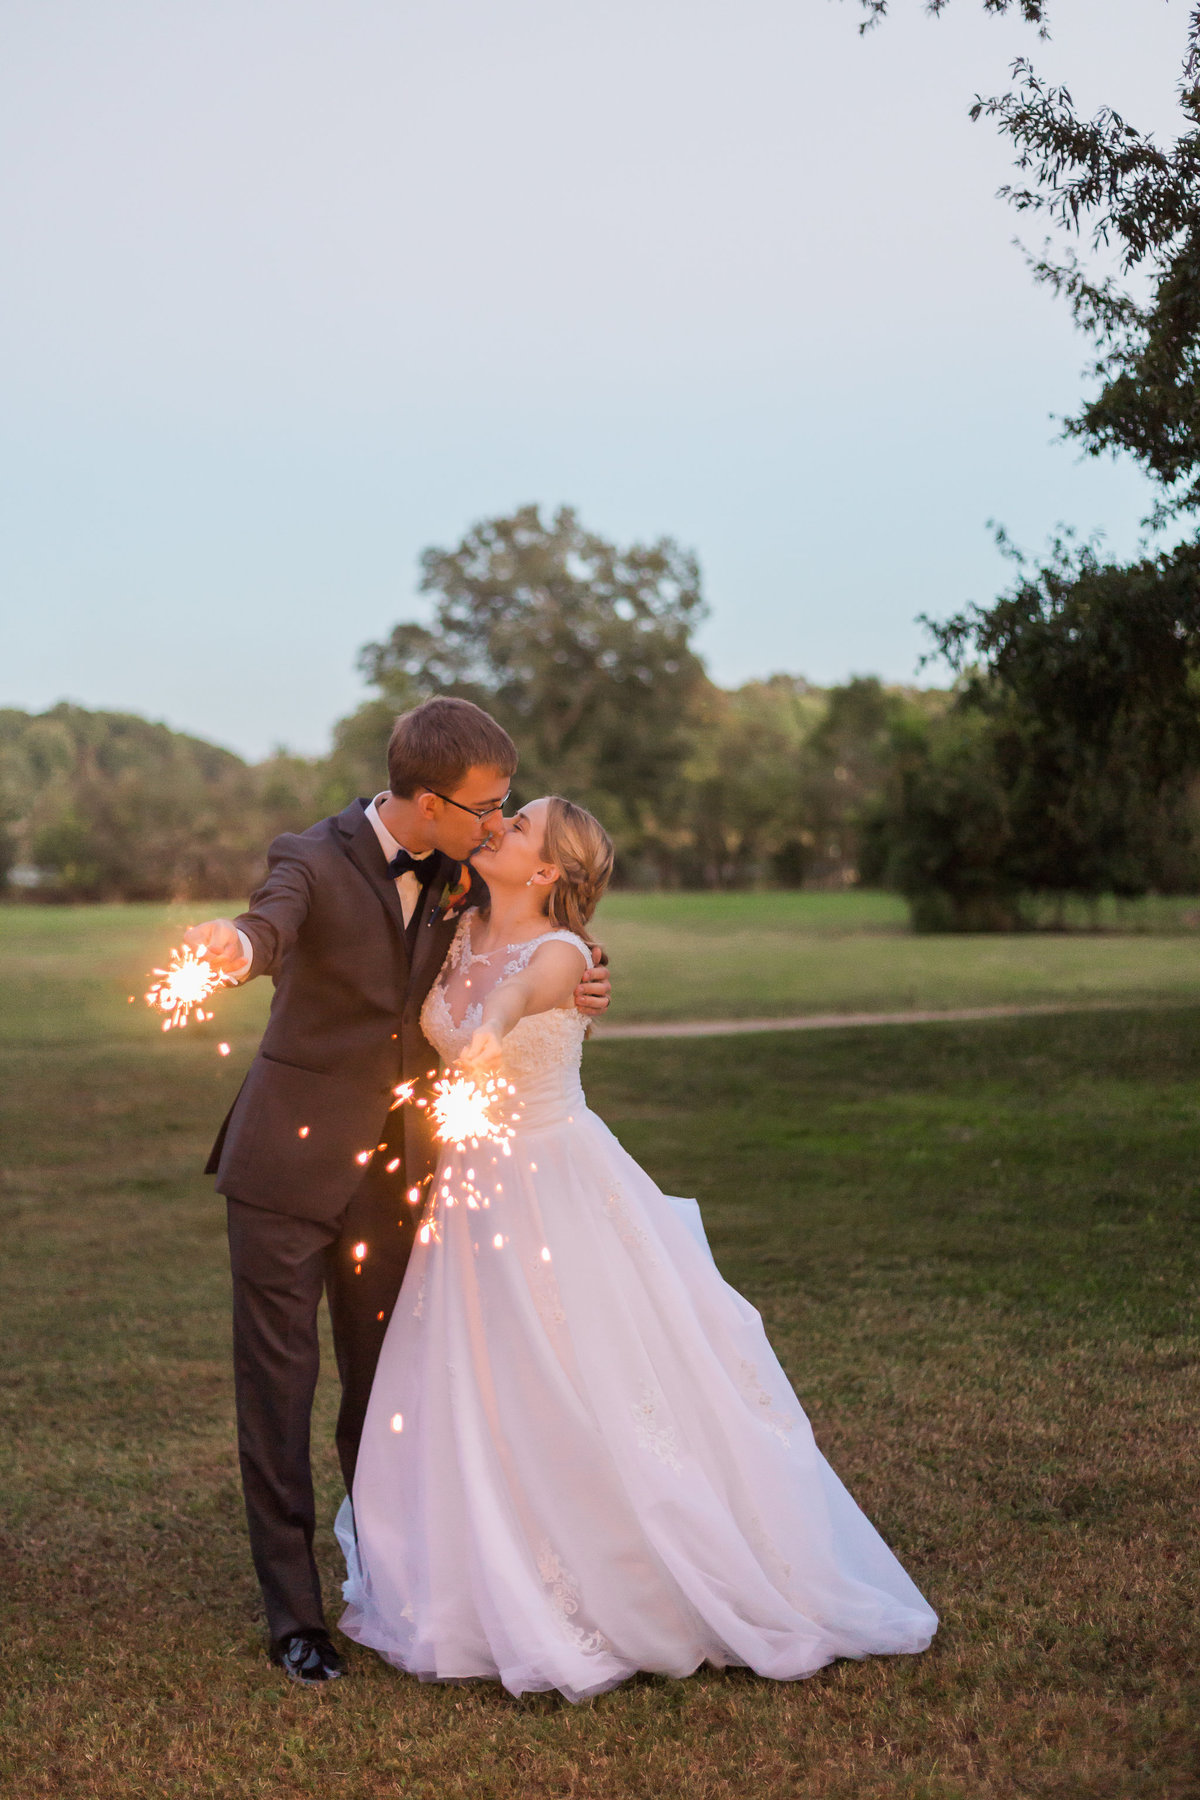 A bride and groom pose with sparklers at Fort Eustis